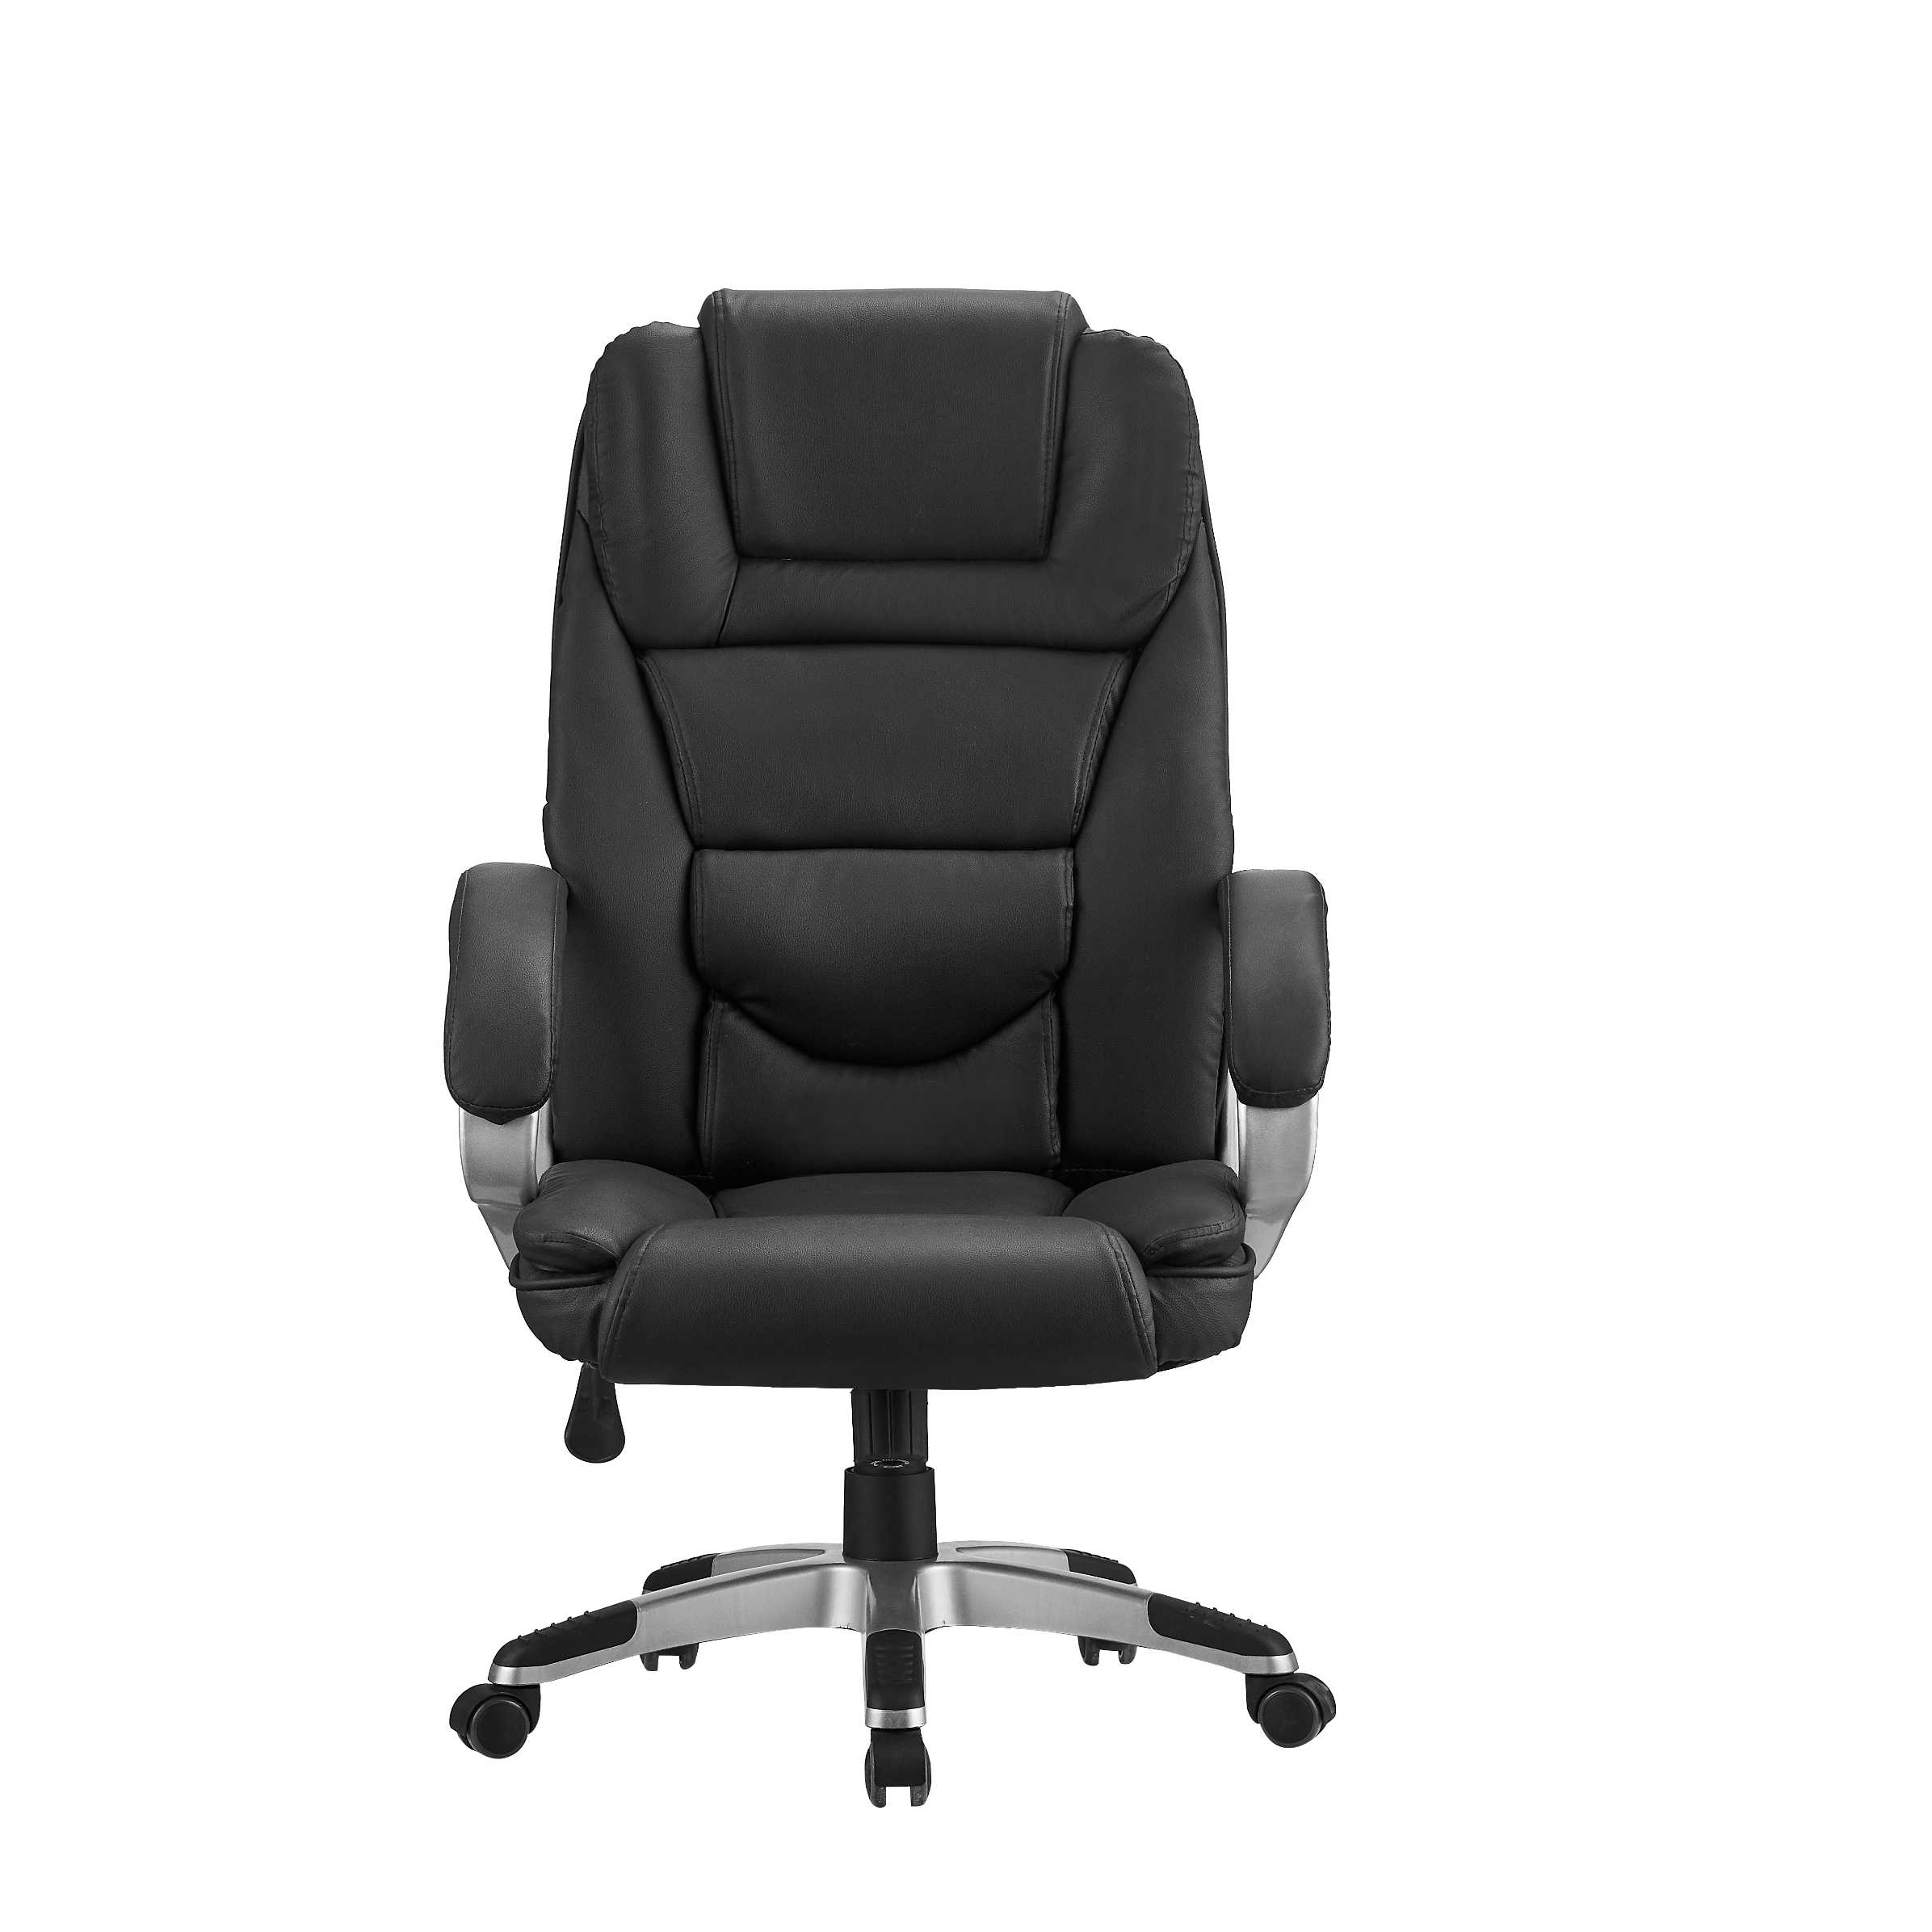 Wholesale black leather office chair high quality office chair is suitable for online sales produced by Chinese factories